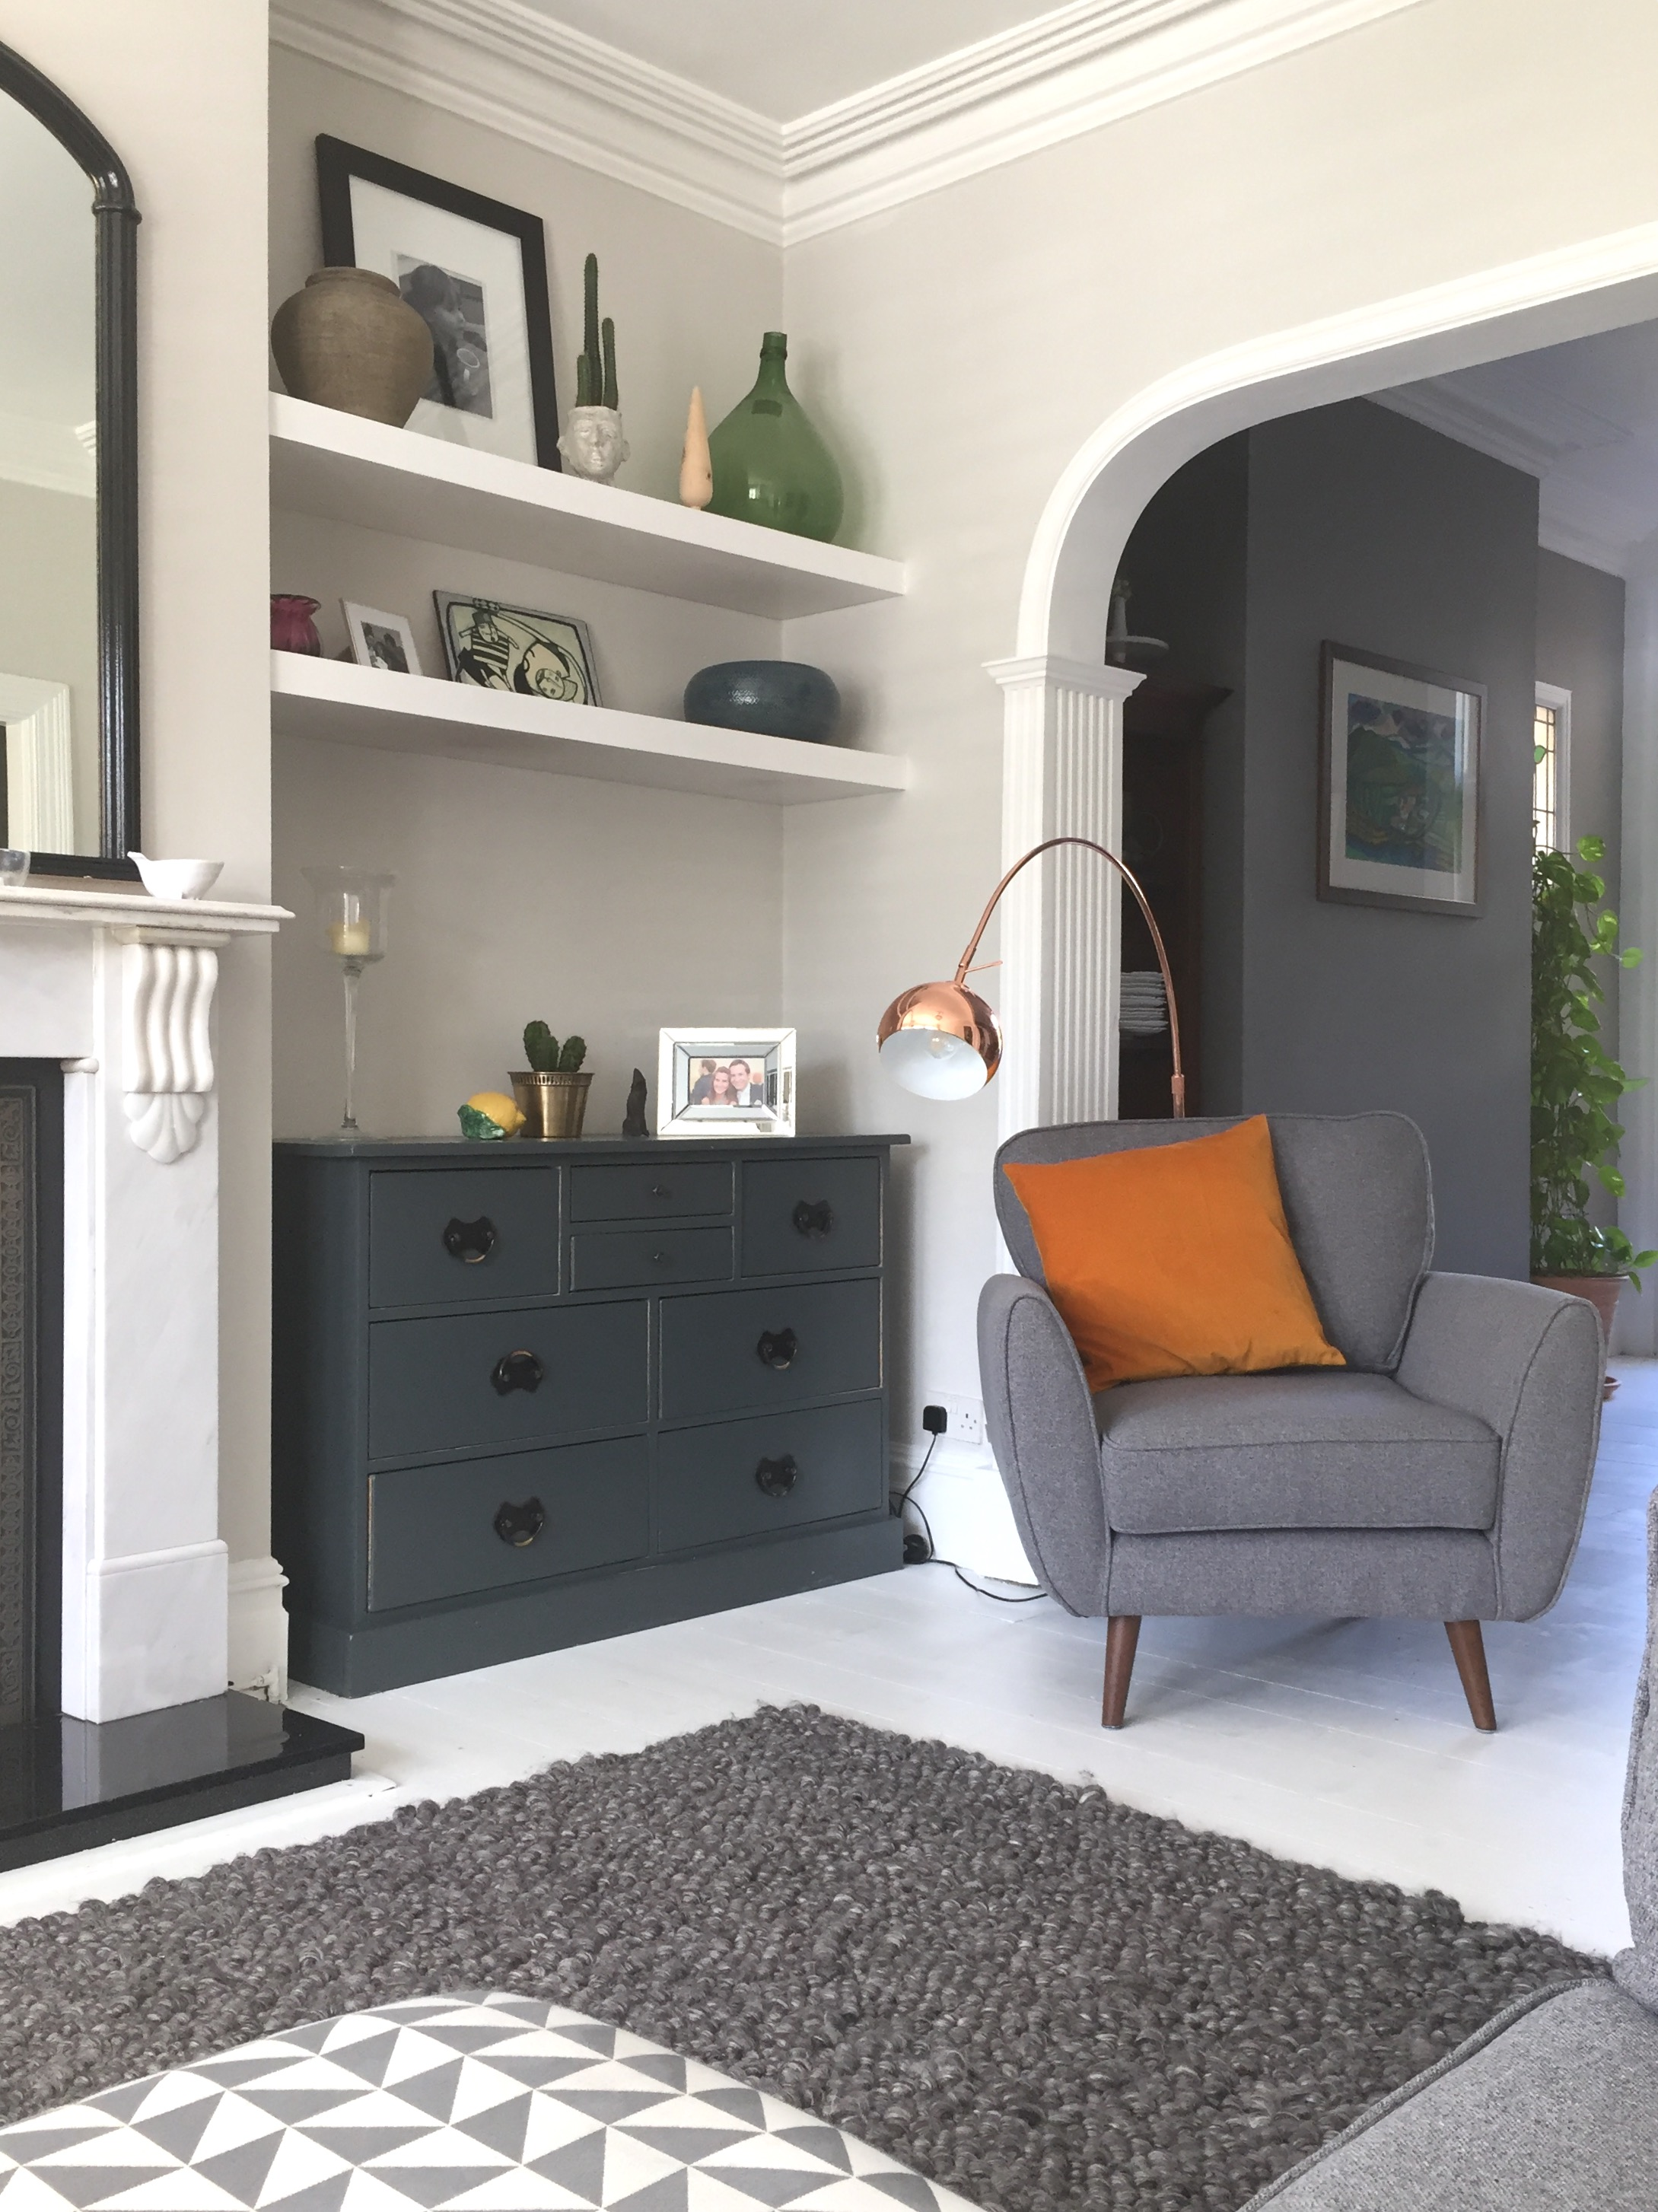 We had some shelves built into the alcoves. We also stripped and repainted the dresser that was left behind buy the previous owners in  Farrow and Ball's Downpipe.